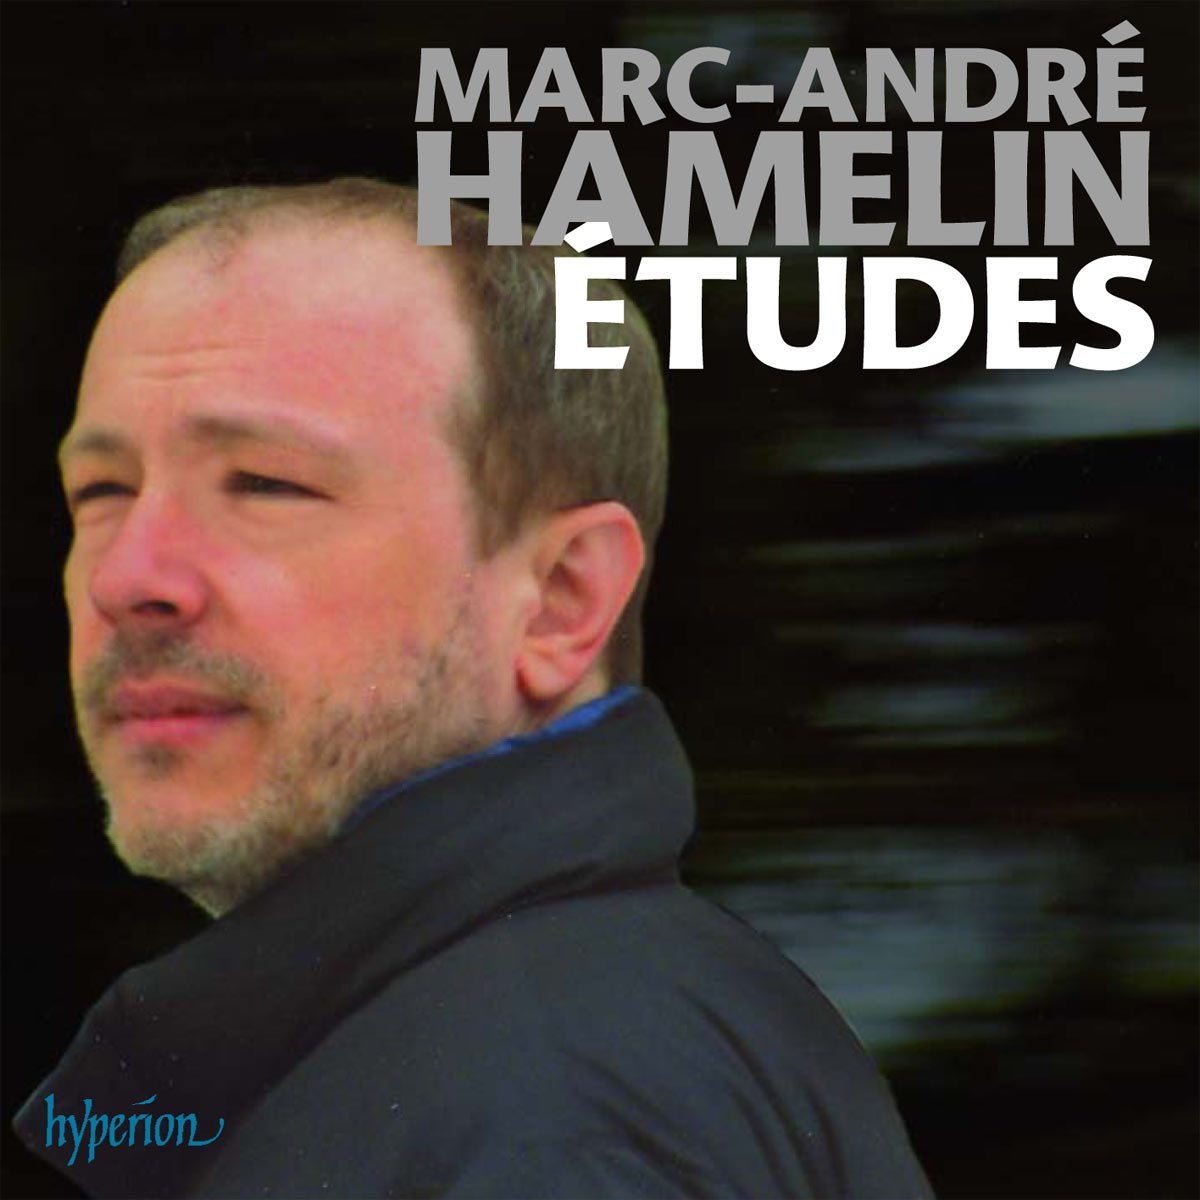 Hamelin: (12) Etudes / Little Nocturne / Con intissimo sentimento - excerpts / Theme and Variations (Cathy's Variations) by CD